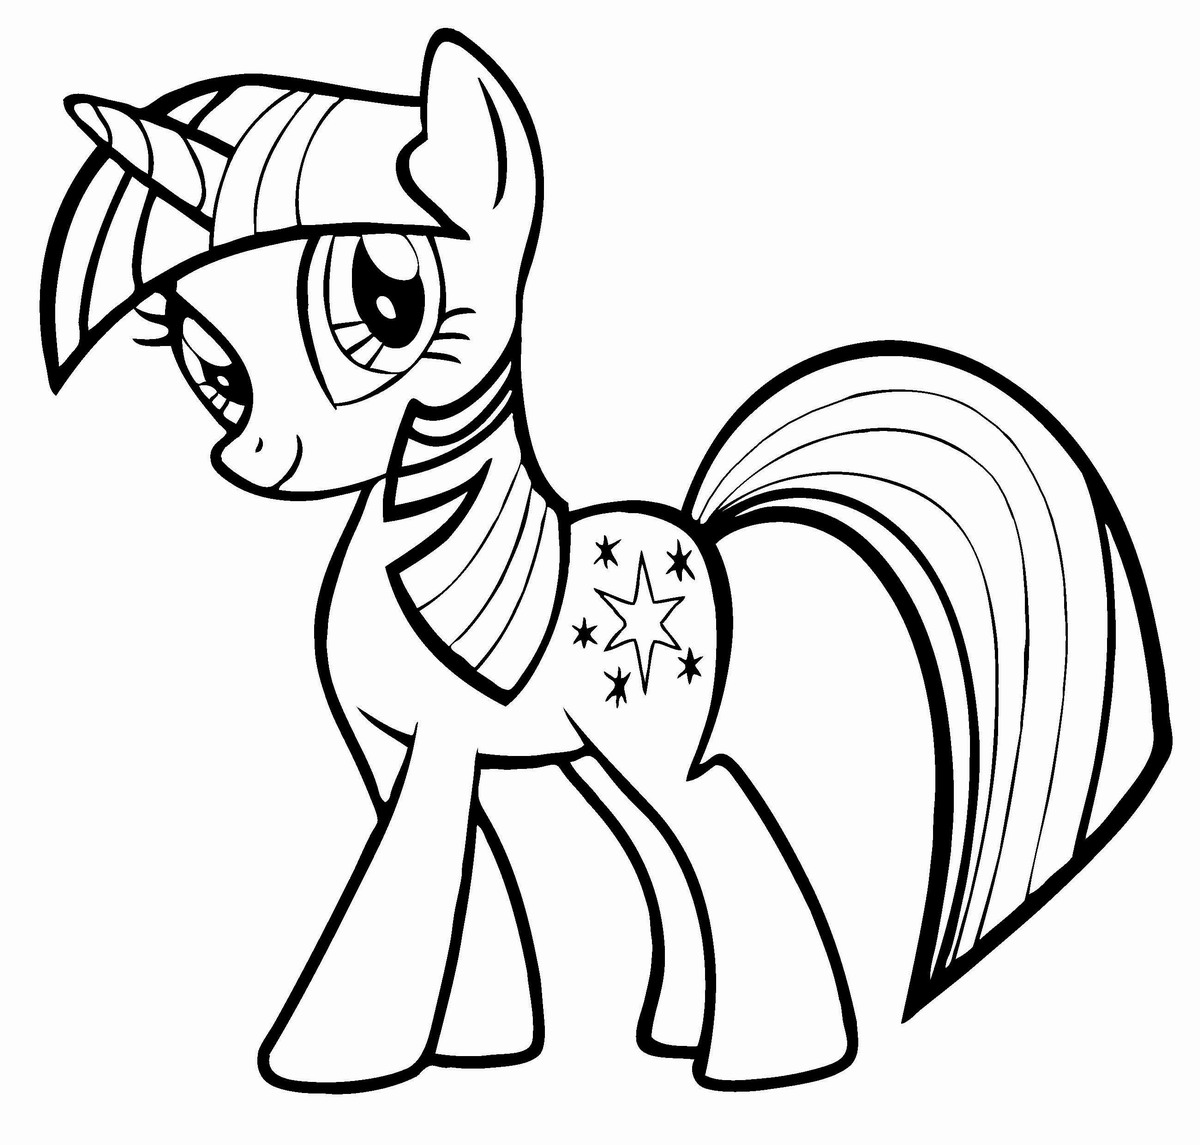 mlp printables ponies from ponyville coloring pages free printable printables mlp